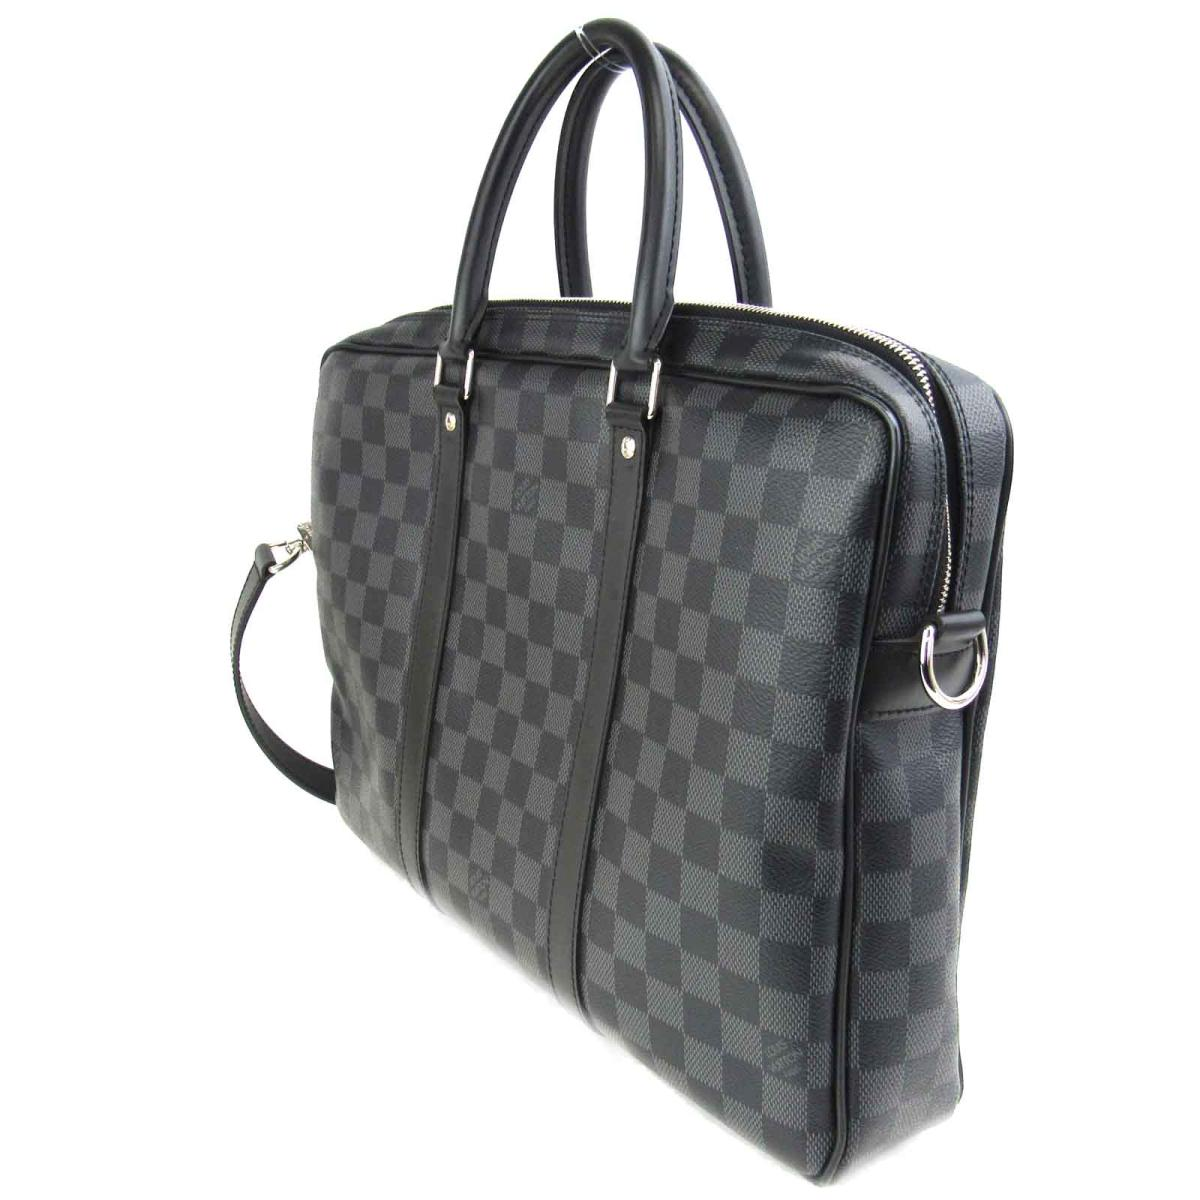 effcfdbc0be3 Auth LOUIS VUITTON PDV PM Porte documents Voyage hand bag N41478 Damier  Graphite Used